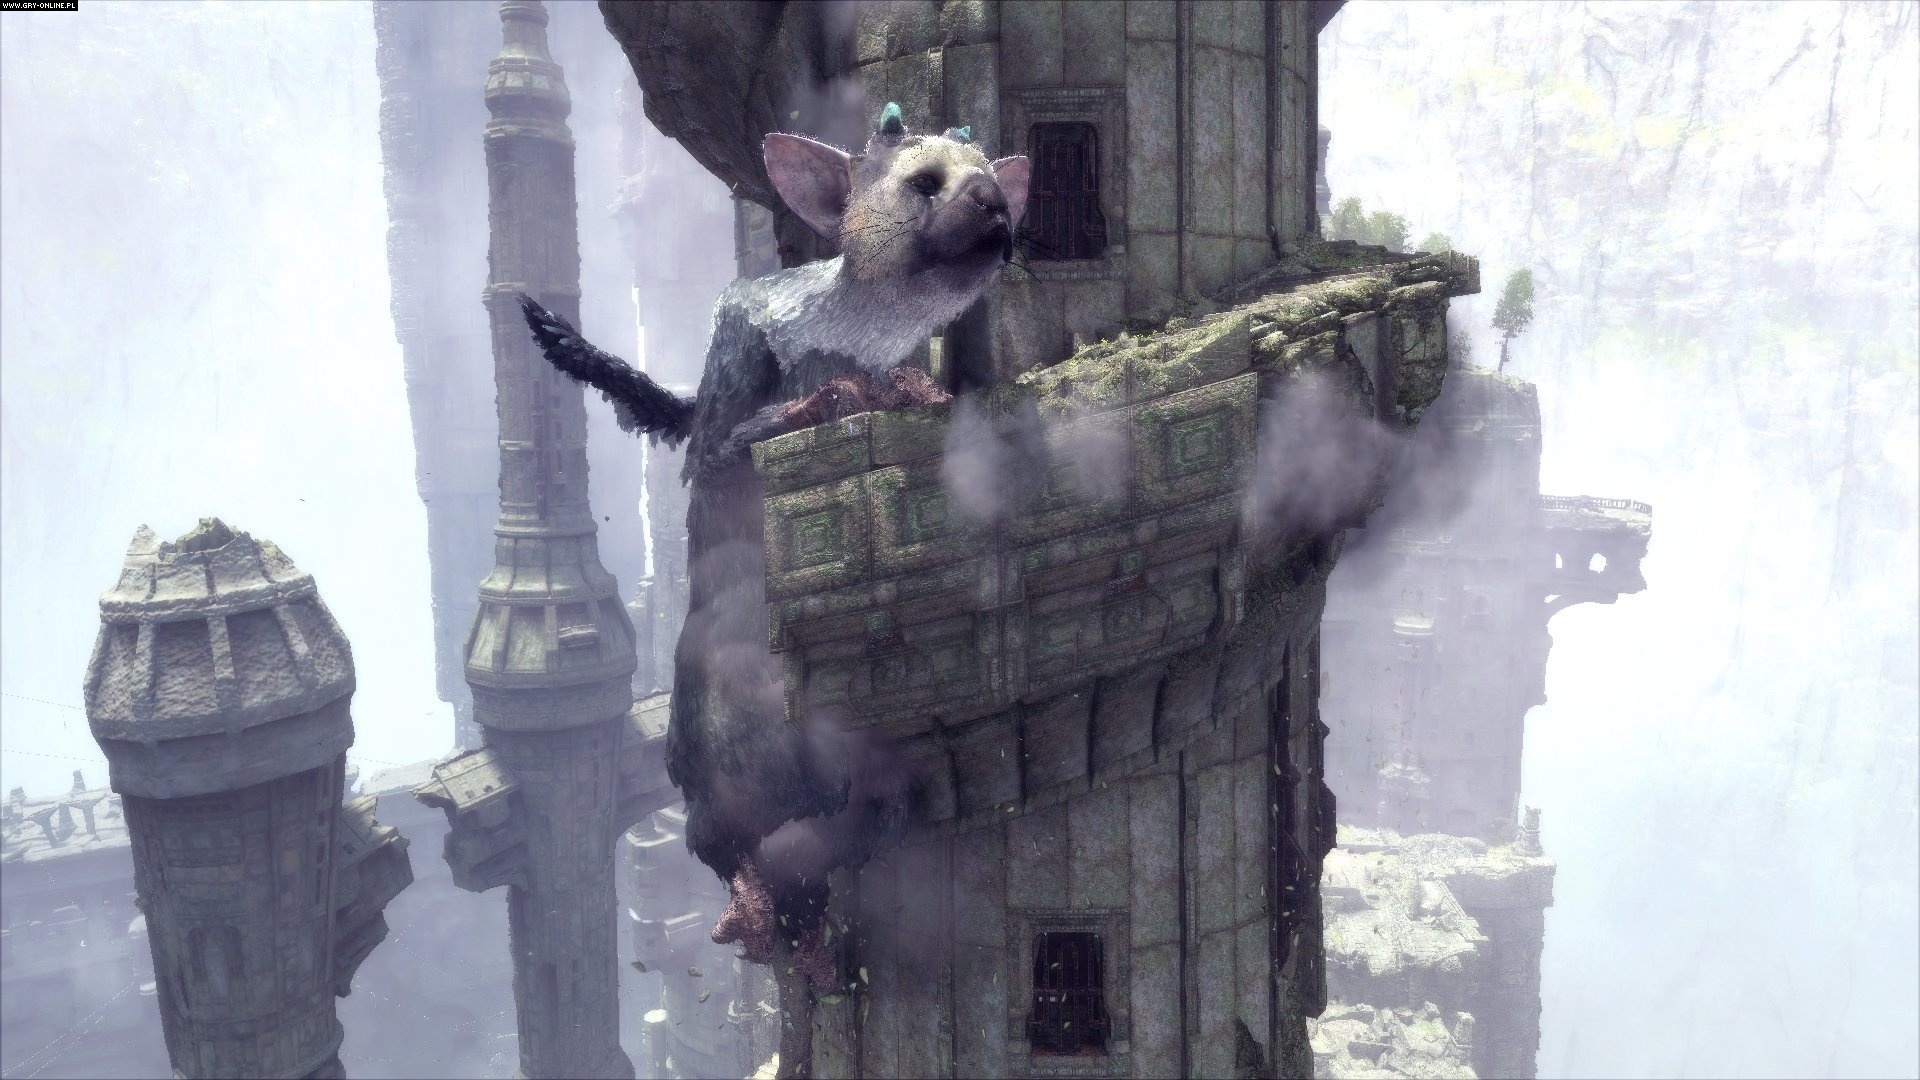 The Last Guardian PS4 Games Image 5/52, Sony Interactive Entertainment